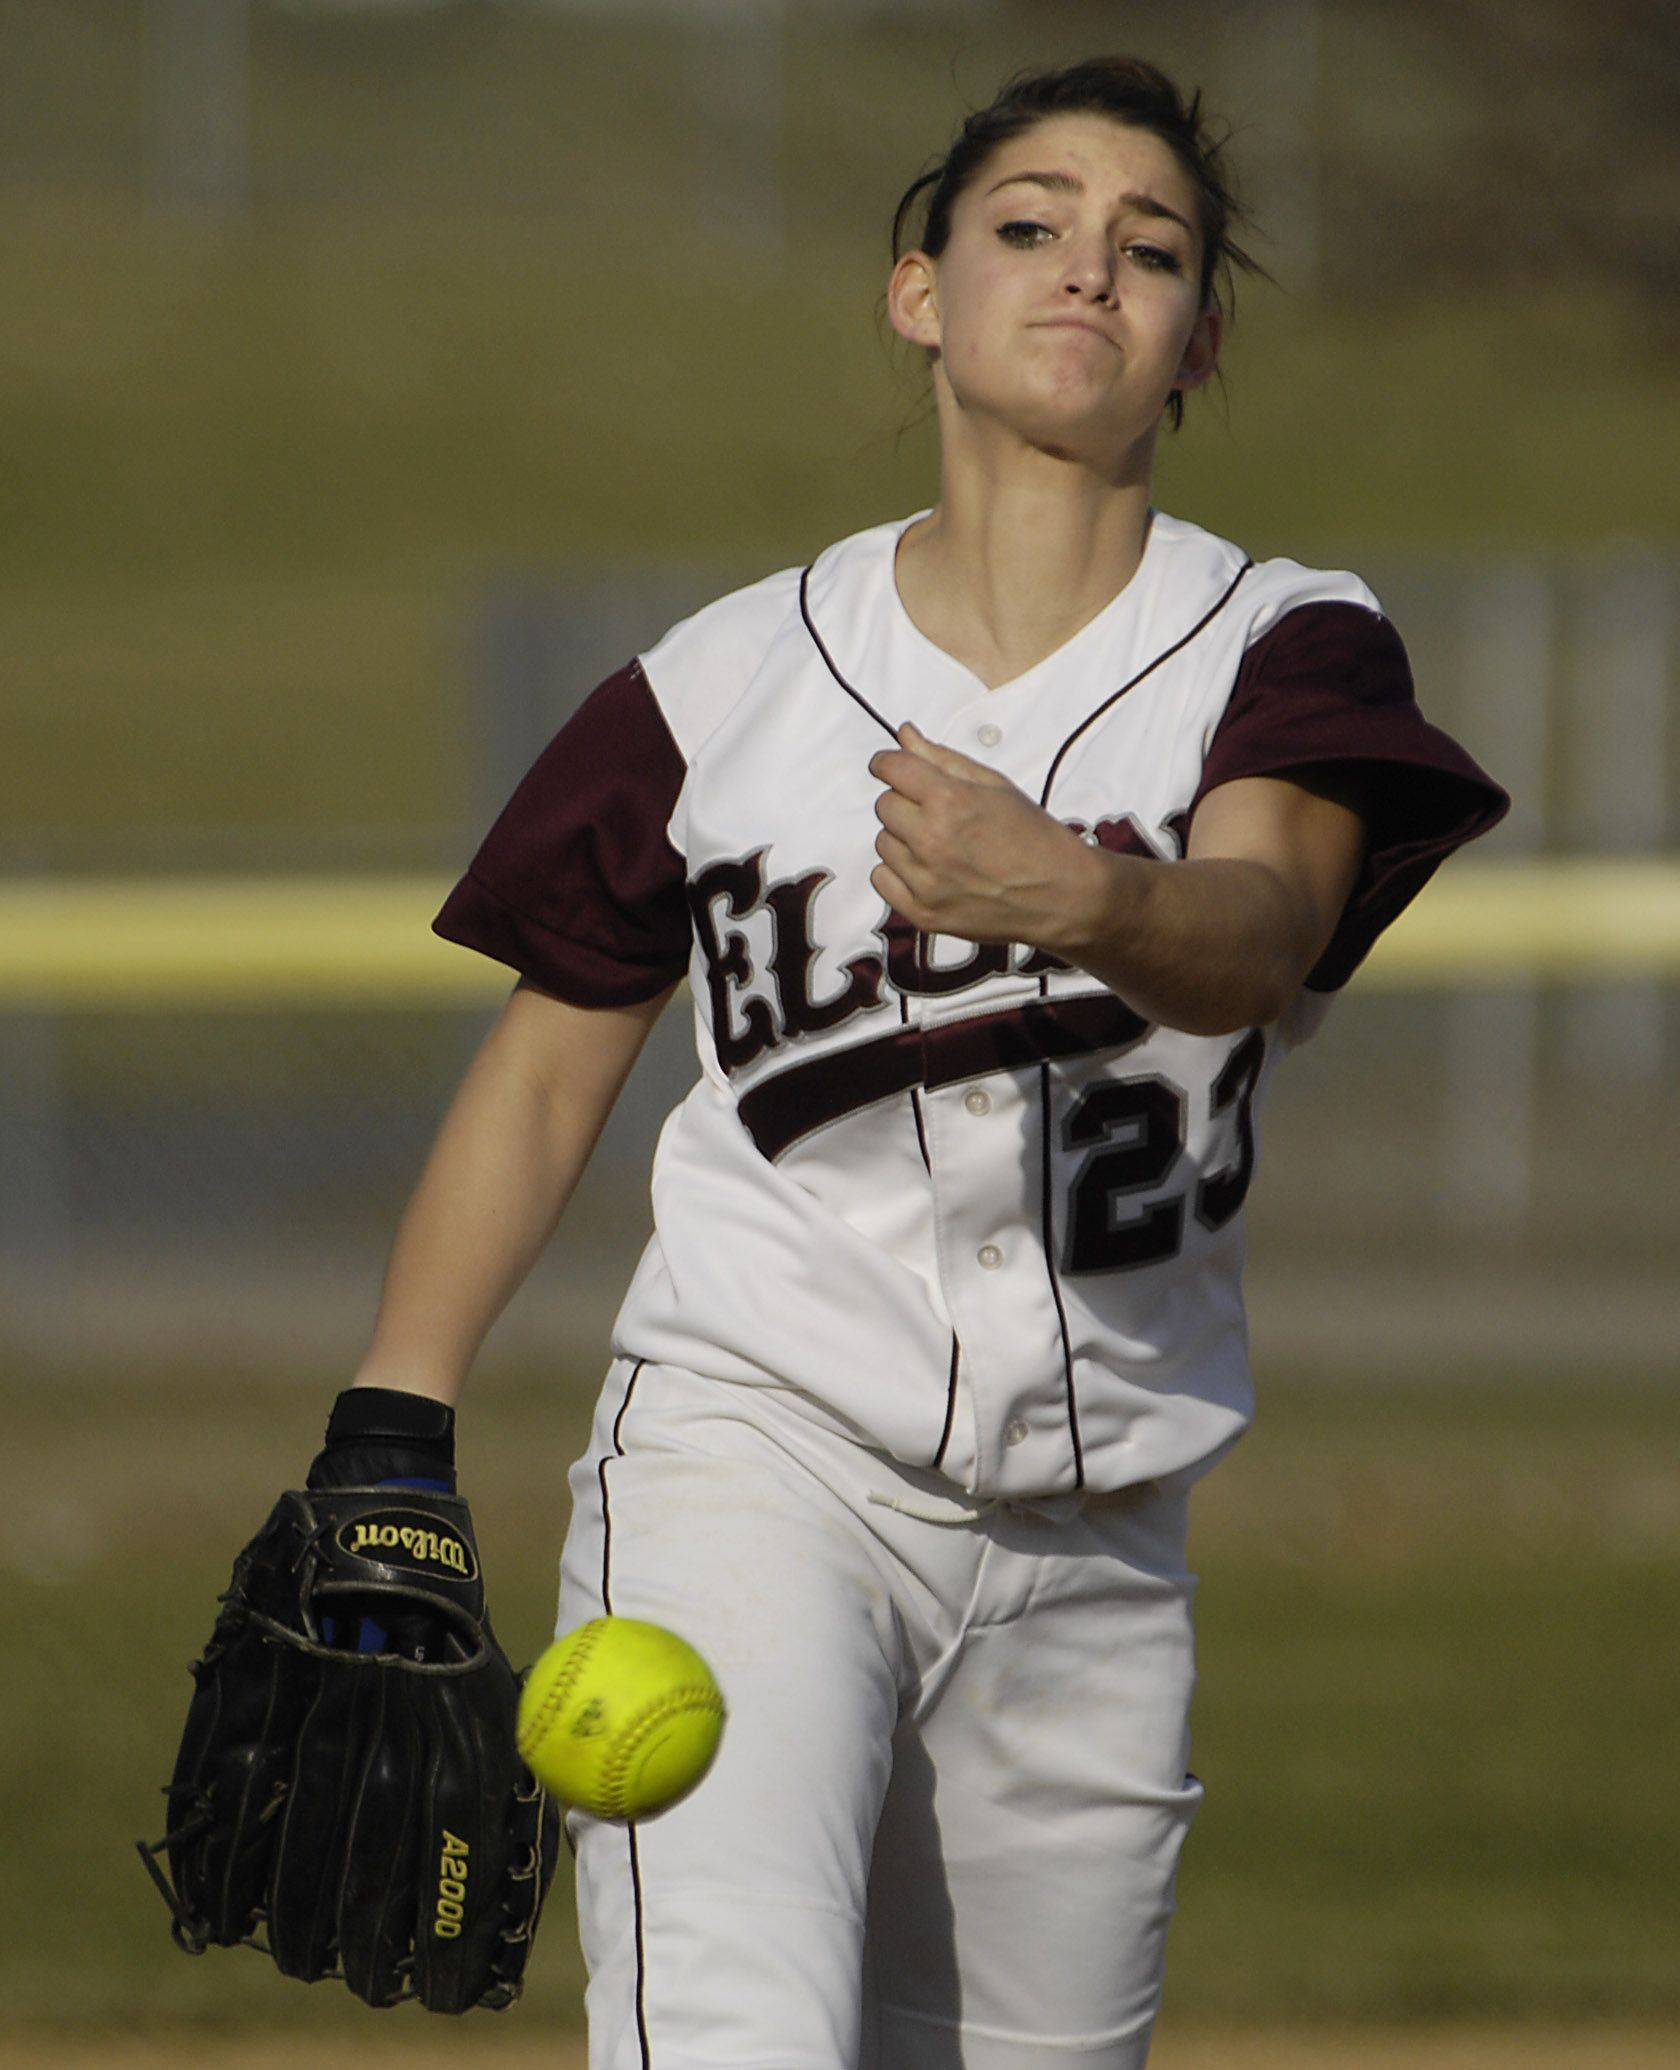 Hannah Perryman, a starting pitcher for Elgin High, pushed to change the state's stalking laws after she says she was stalked for years and unable to obtain an order of protection despite numerous cries for help.